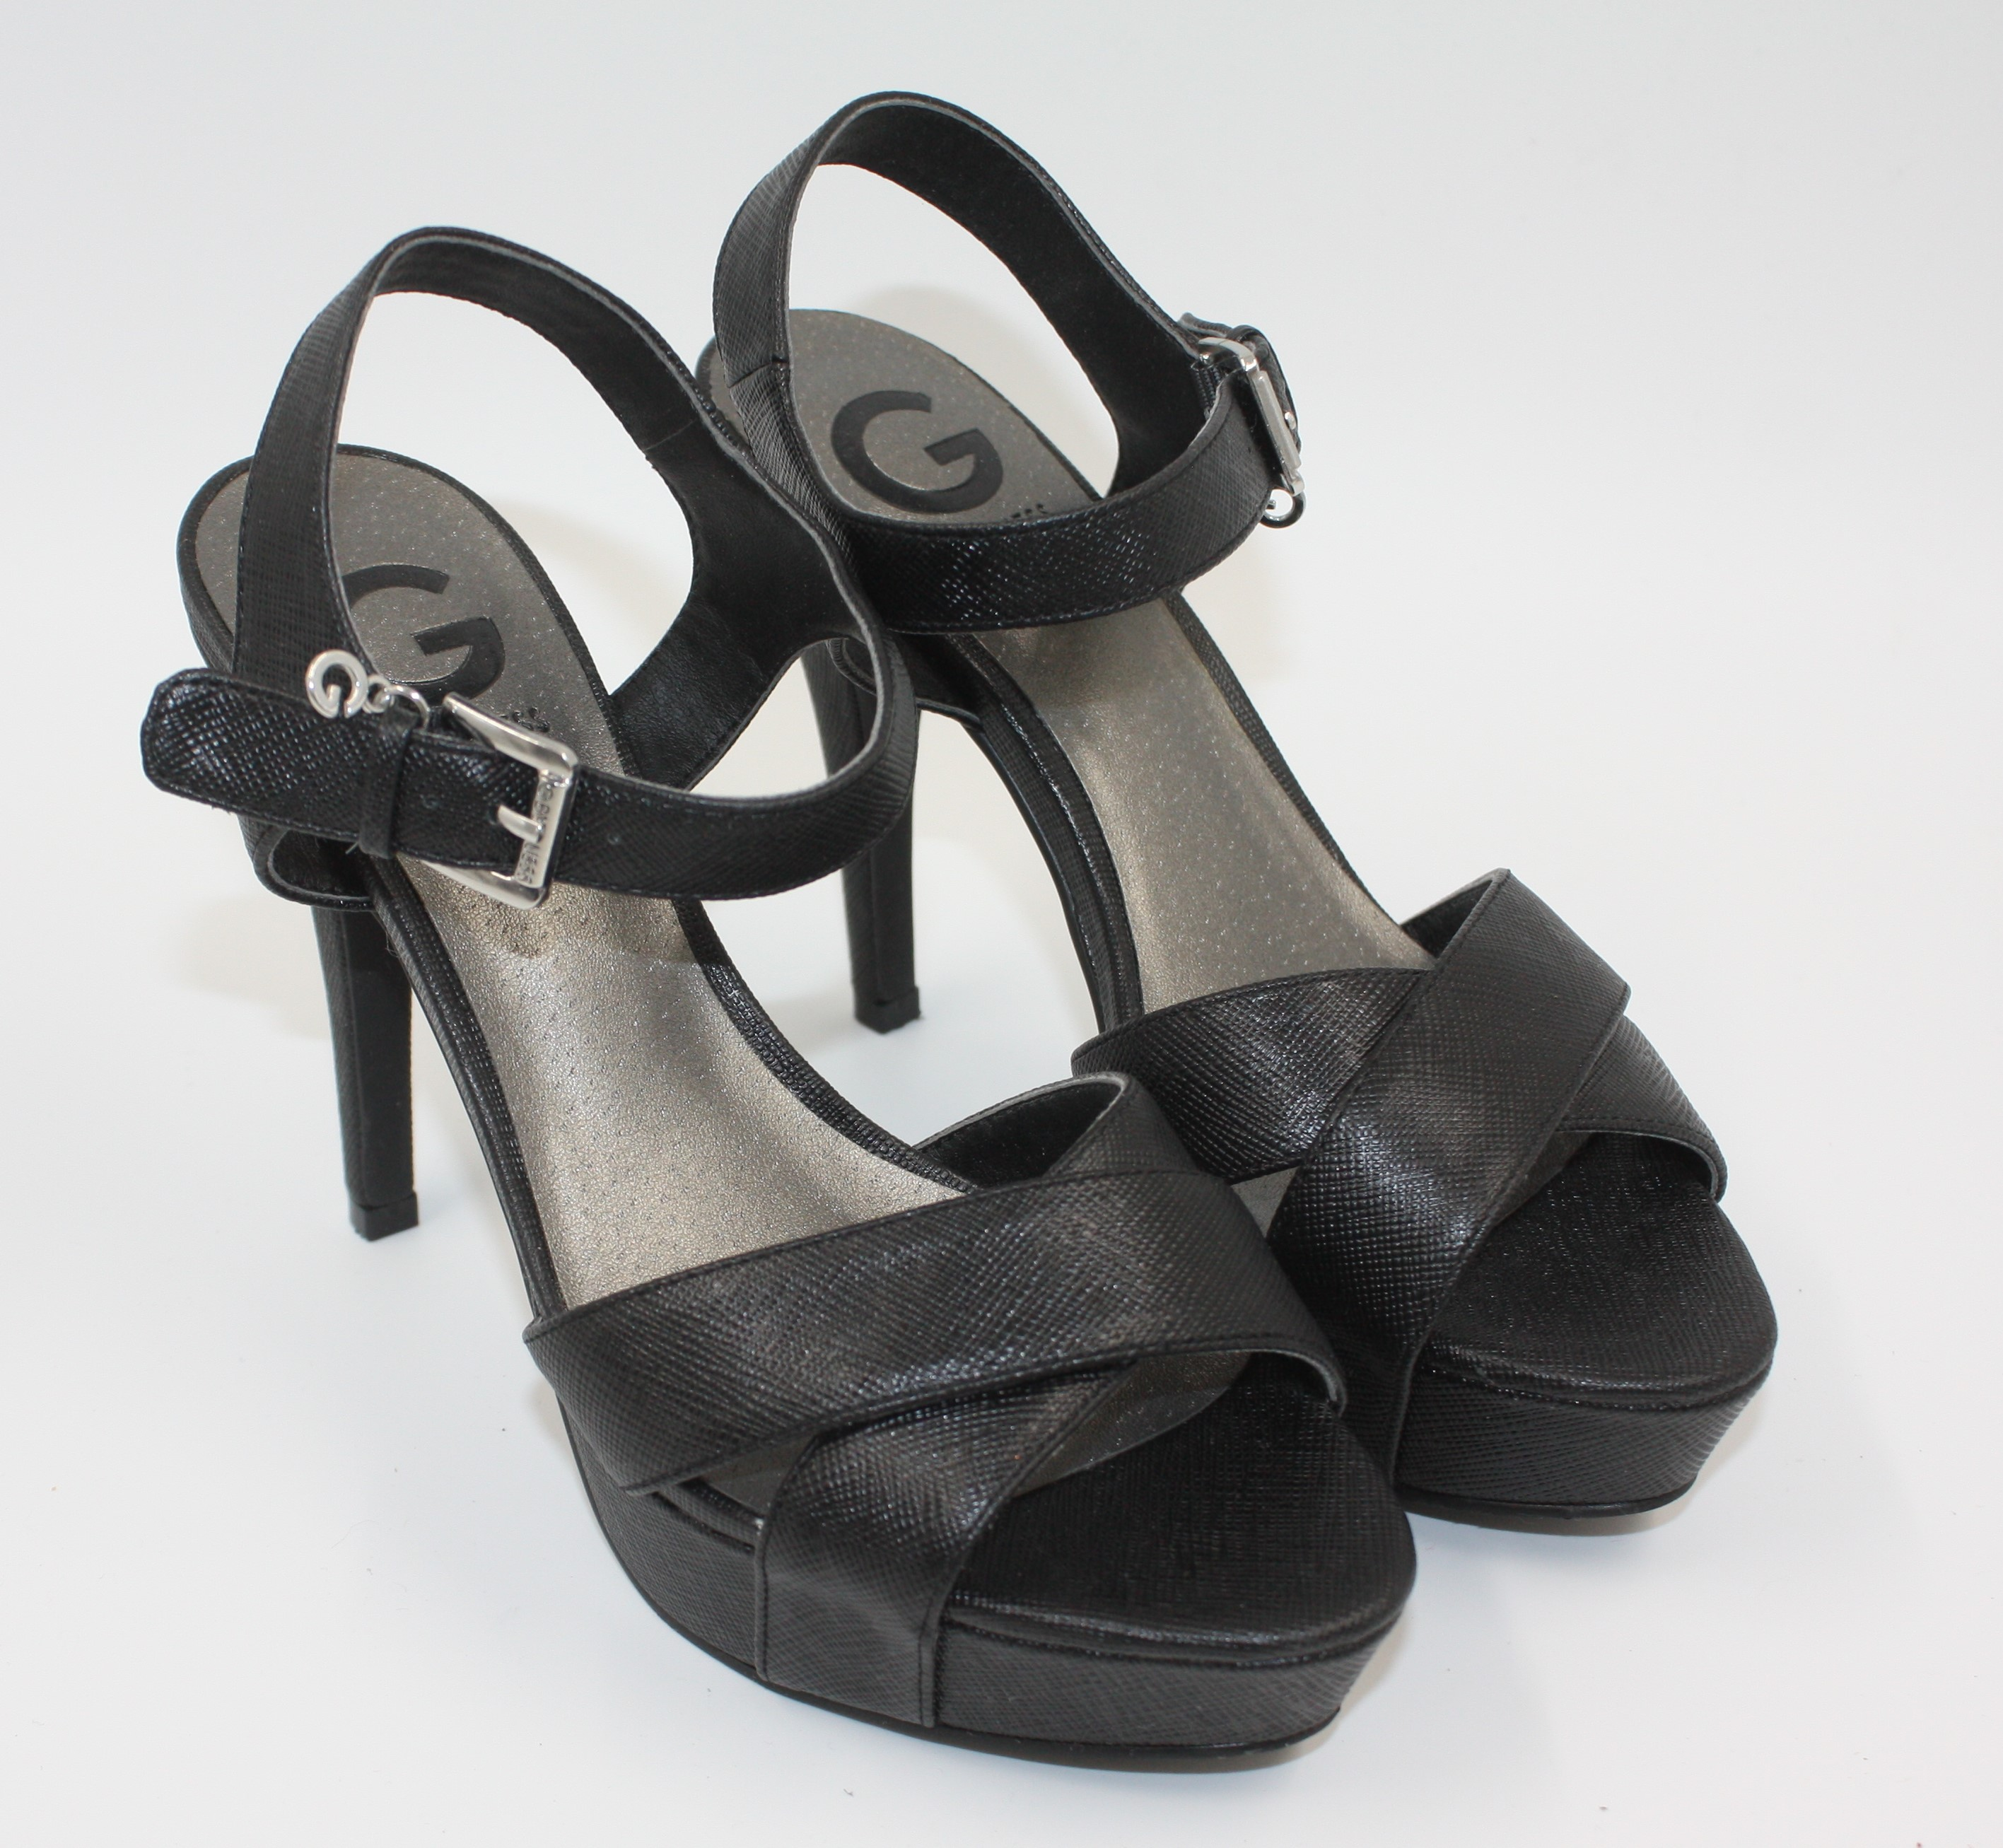 4cacbc87512 G By Guess Womens Ladies Black Open Toe Ankle Strap Platform Heels ...